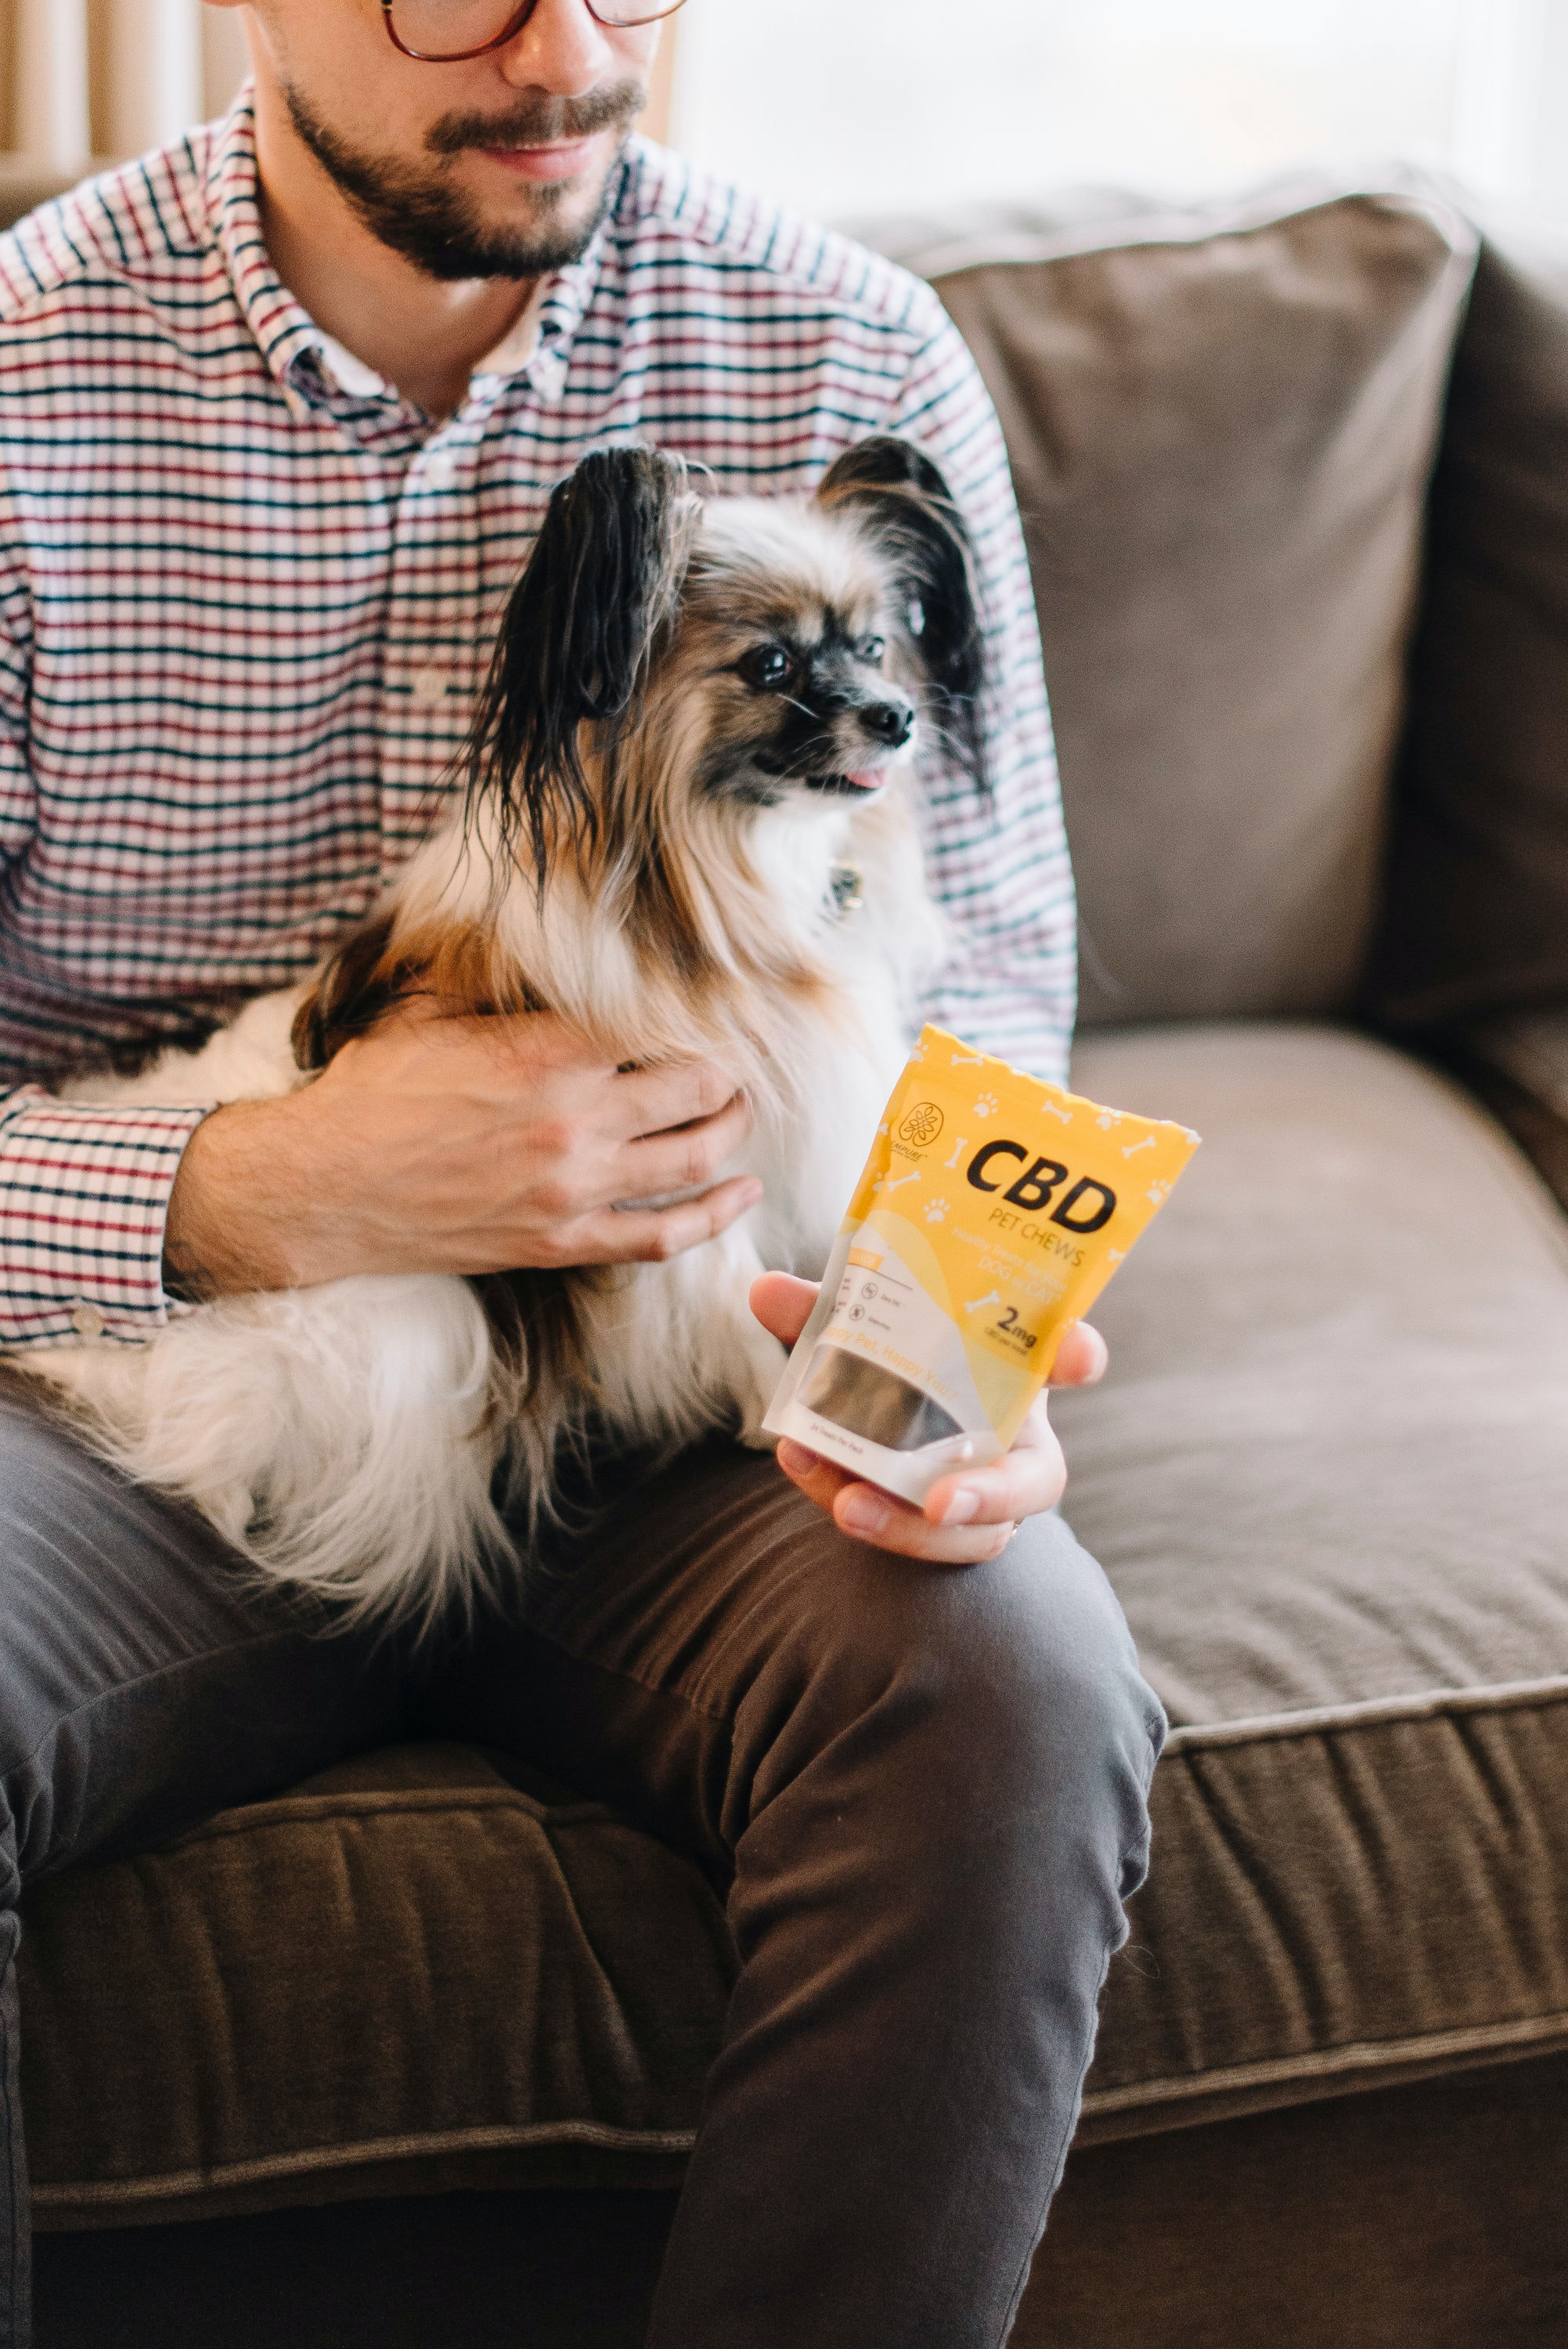 CBD pet treats. Image by Sohini, via Unsplash.com.